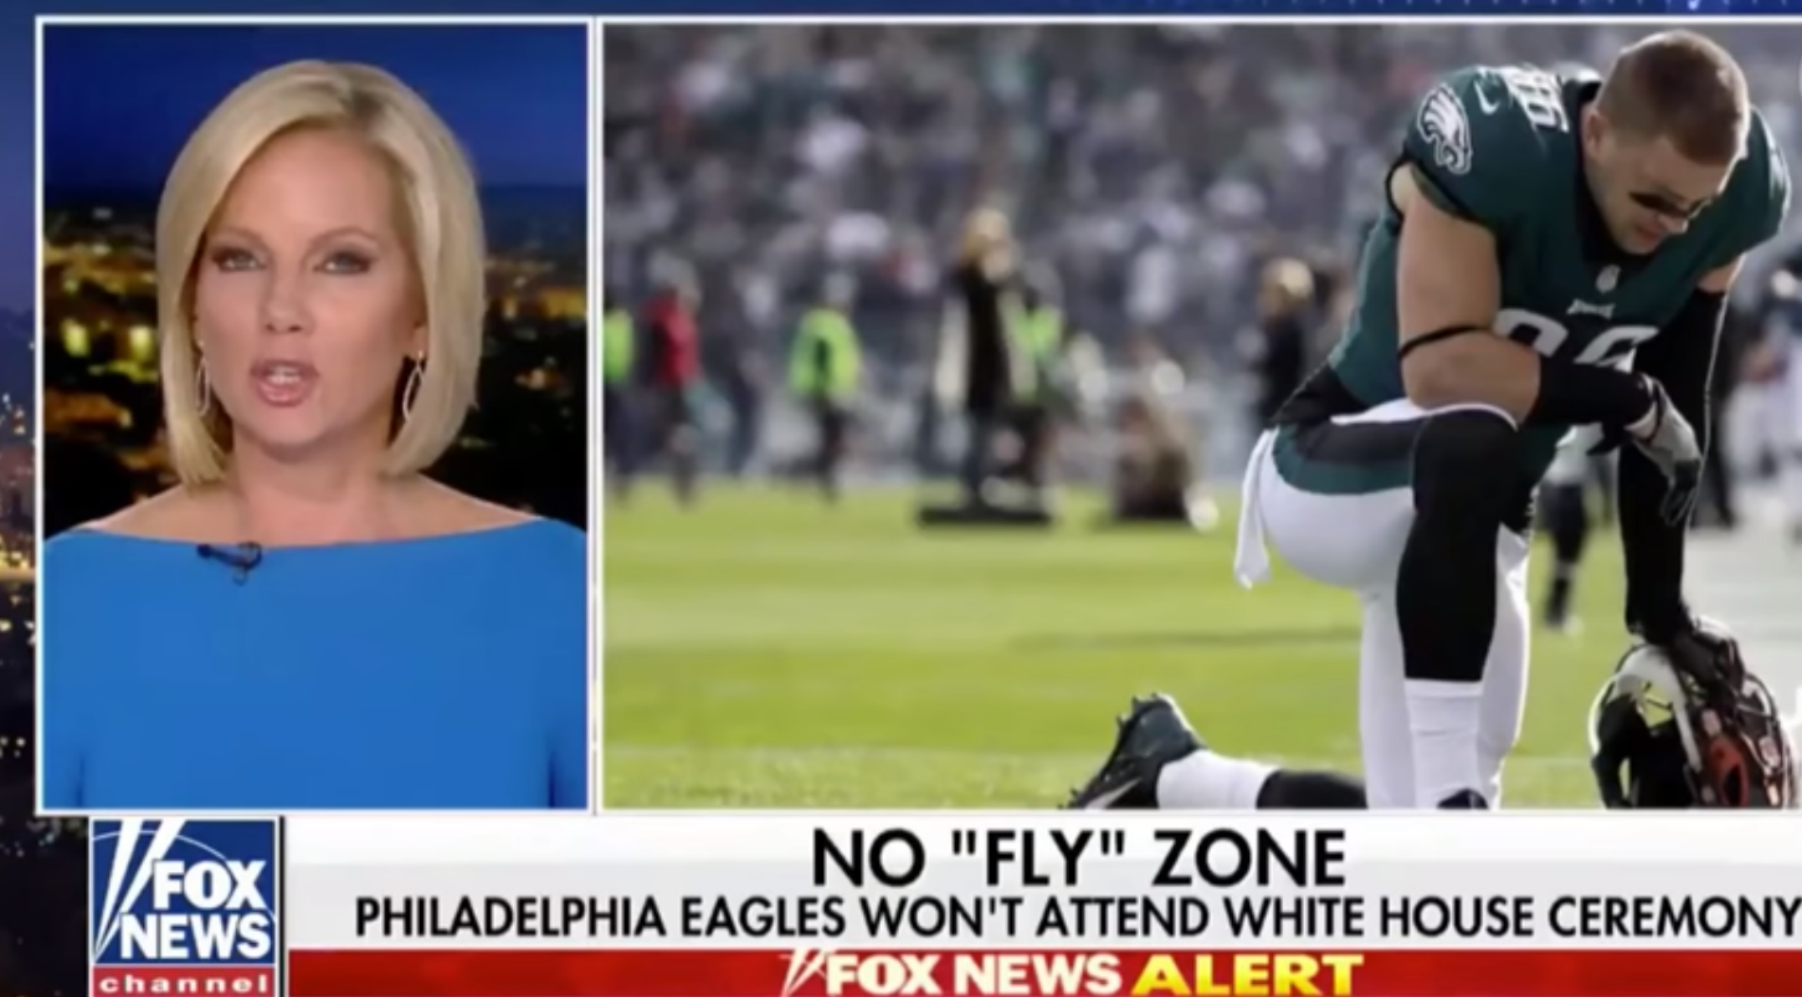 Photo shows Fox News using images of Philadelphia Eagles players praying before a game for a segment on US President Donald Trump's criticism of national anthem protest.